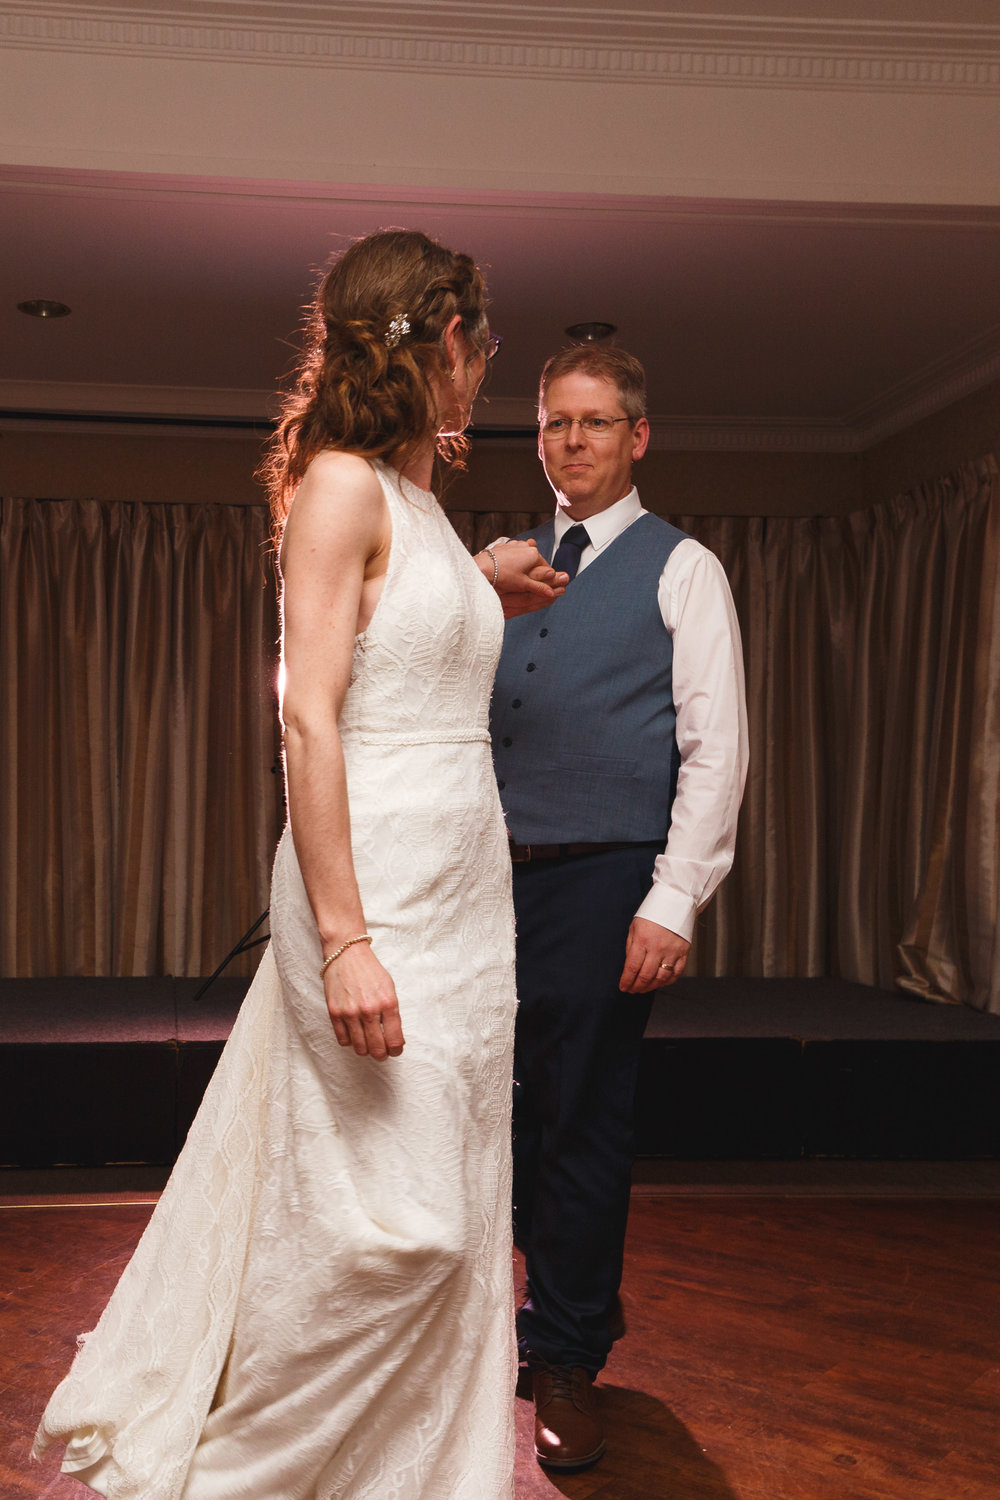 highlight-wedding-photography-hotel-coachman-palmerston-north-76.jpg